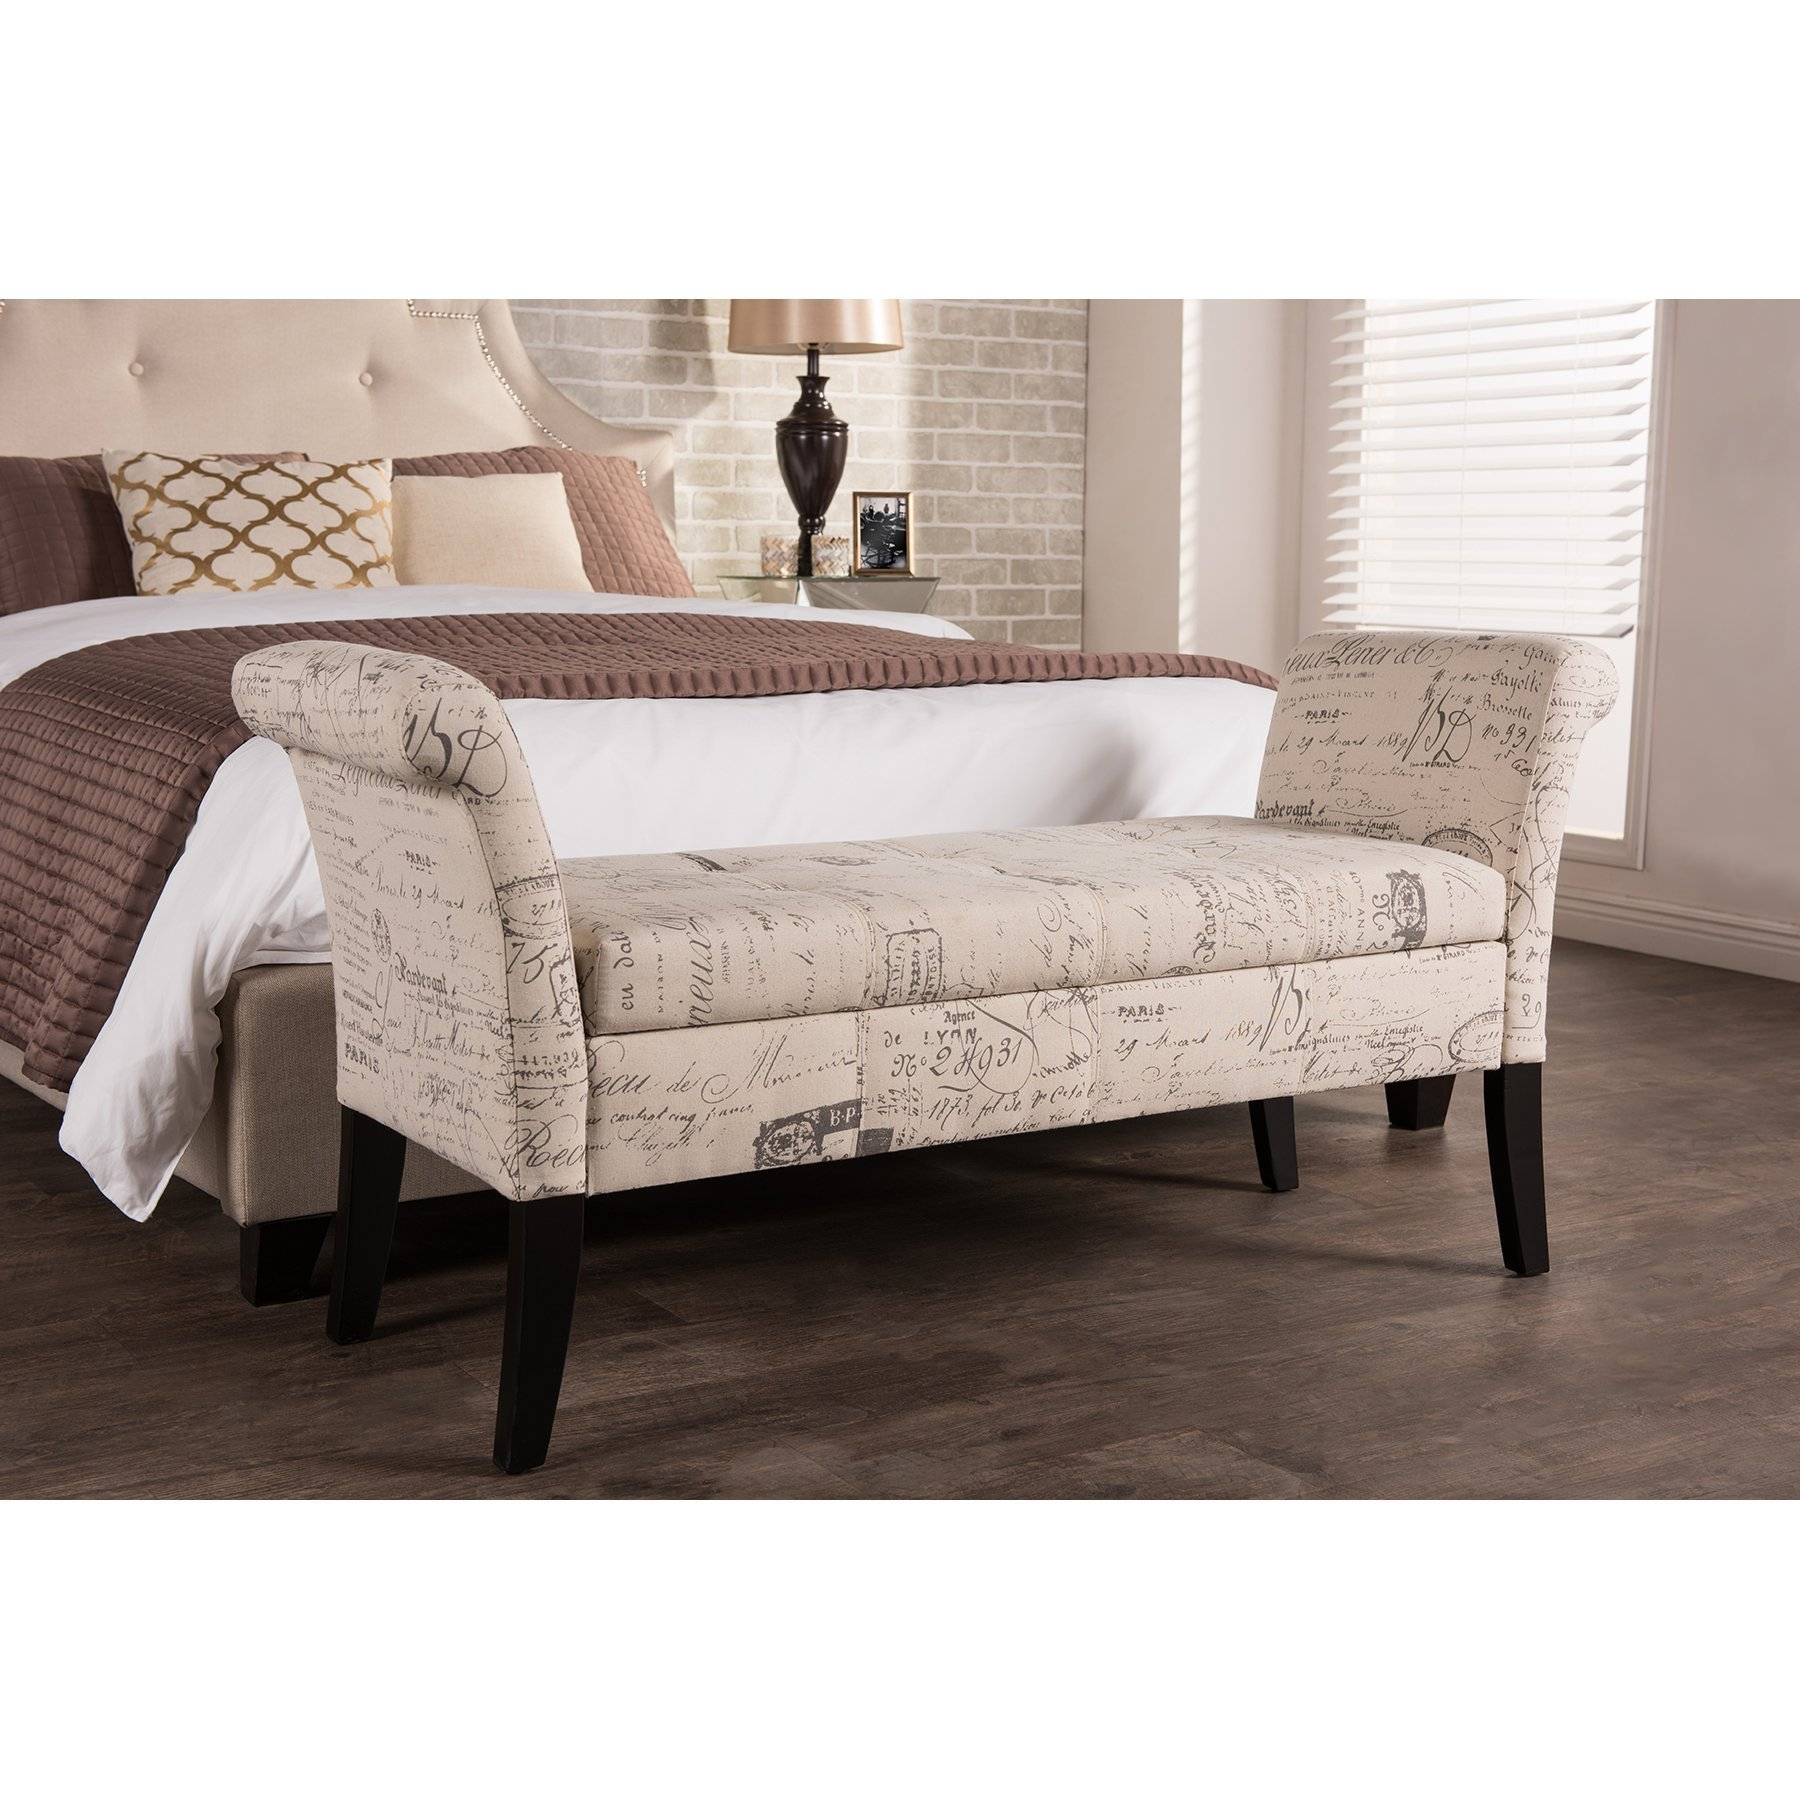 Best Wholesale Interiors Baxton Studio Upholstered Storage With Pictures